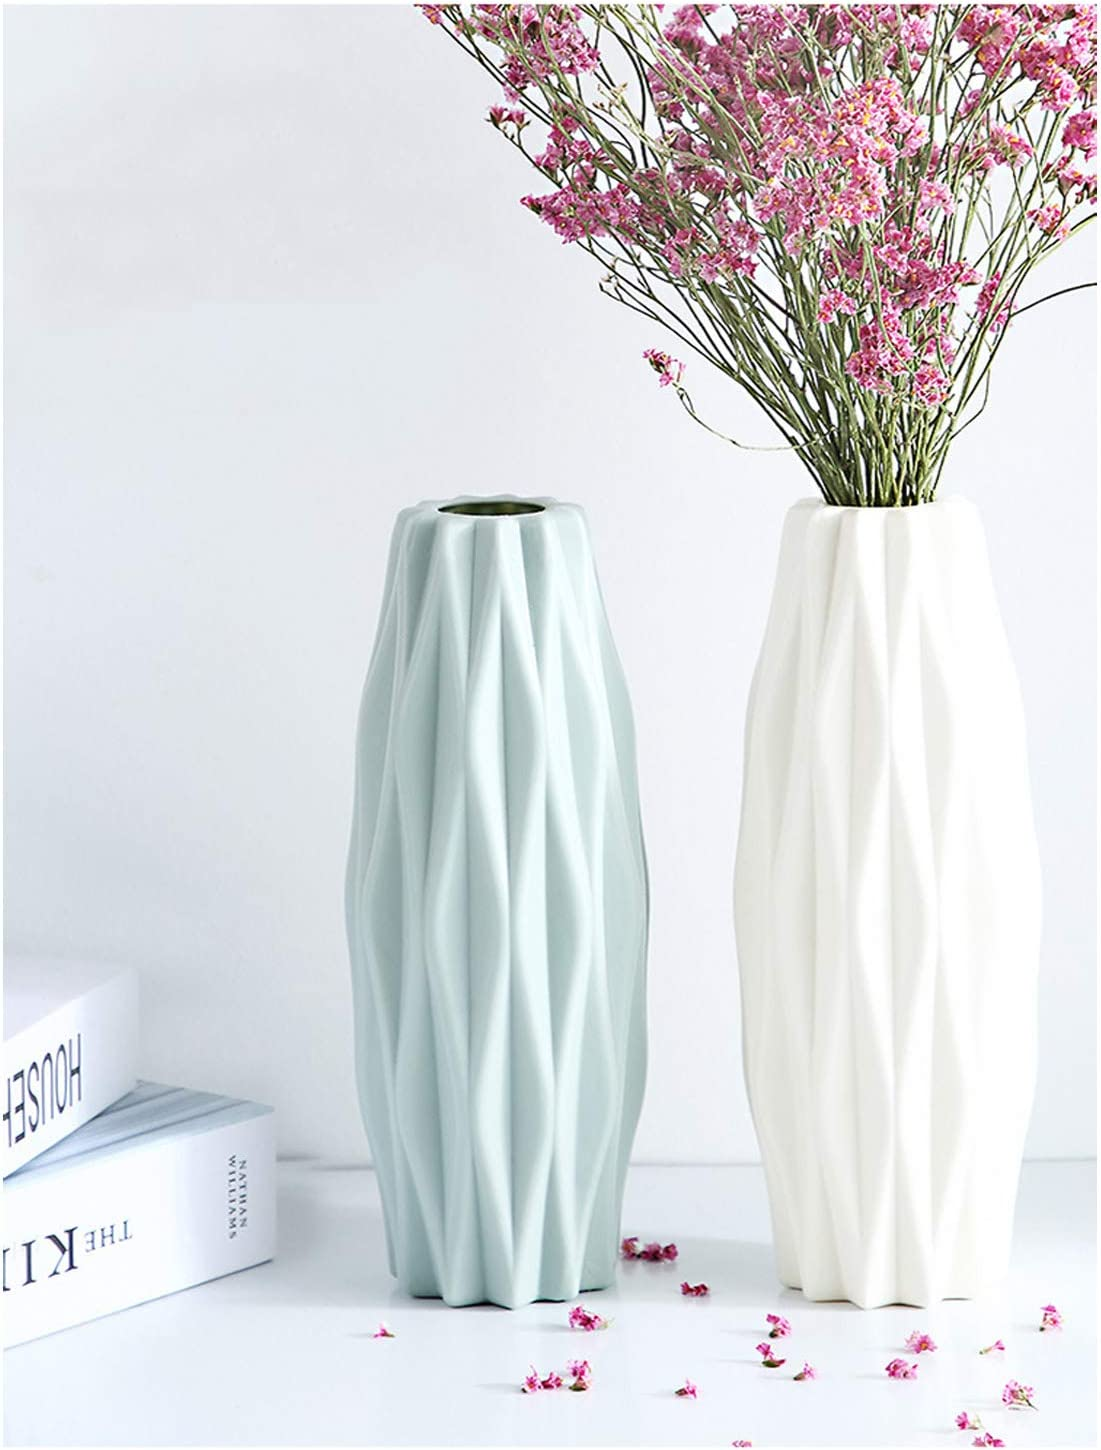 2PC Vases for Flowers, Geometric Flower Vases Decorative, for Living Room, Table, Home,Office,Artificial Flowers Decor,Green and White